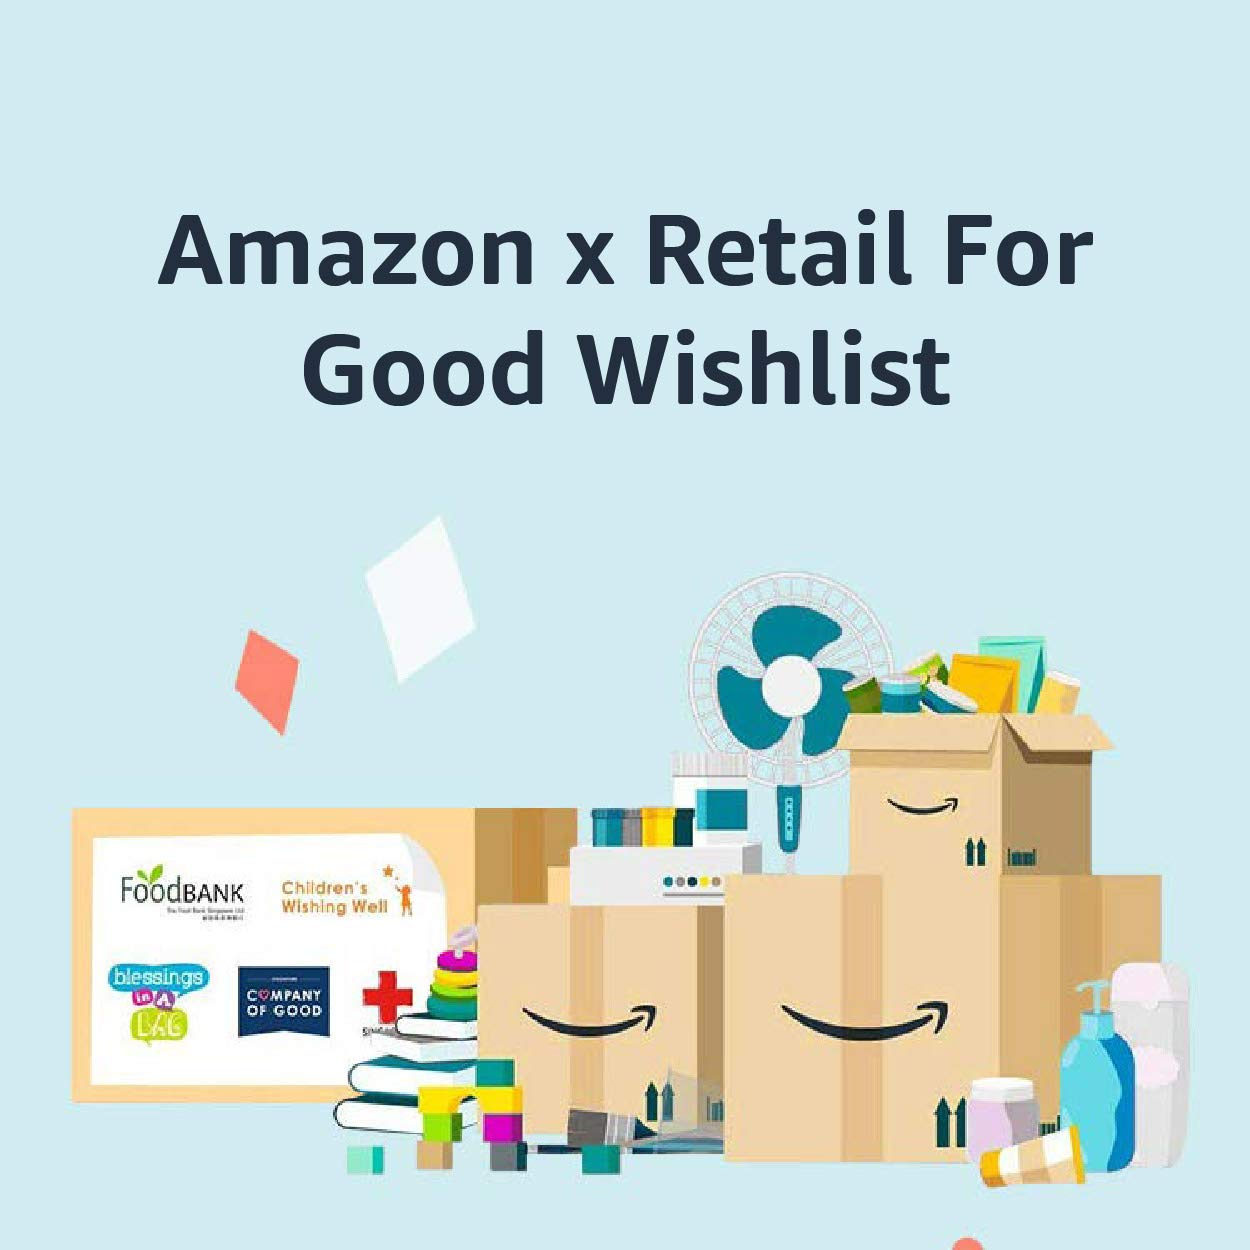 Amazon x Retail for Good Wishlist